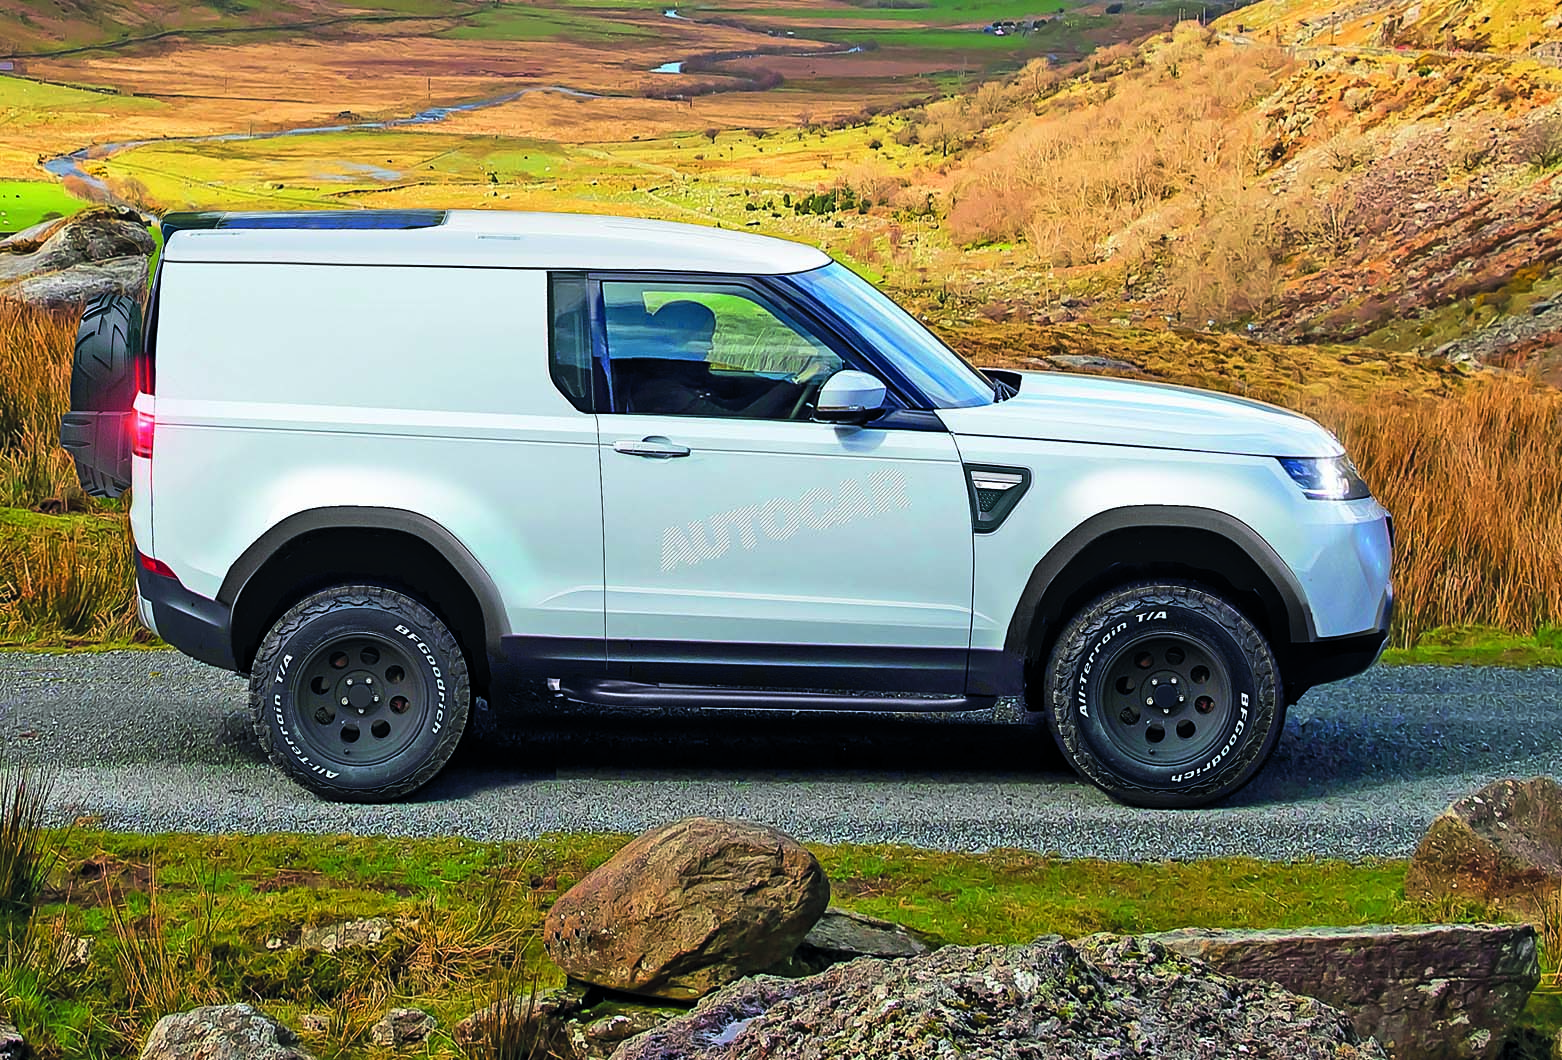 70 All New New Jeep Defender 2019 Release Date History by New Jeep Defender 2019 Release Date